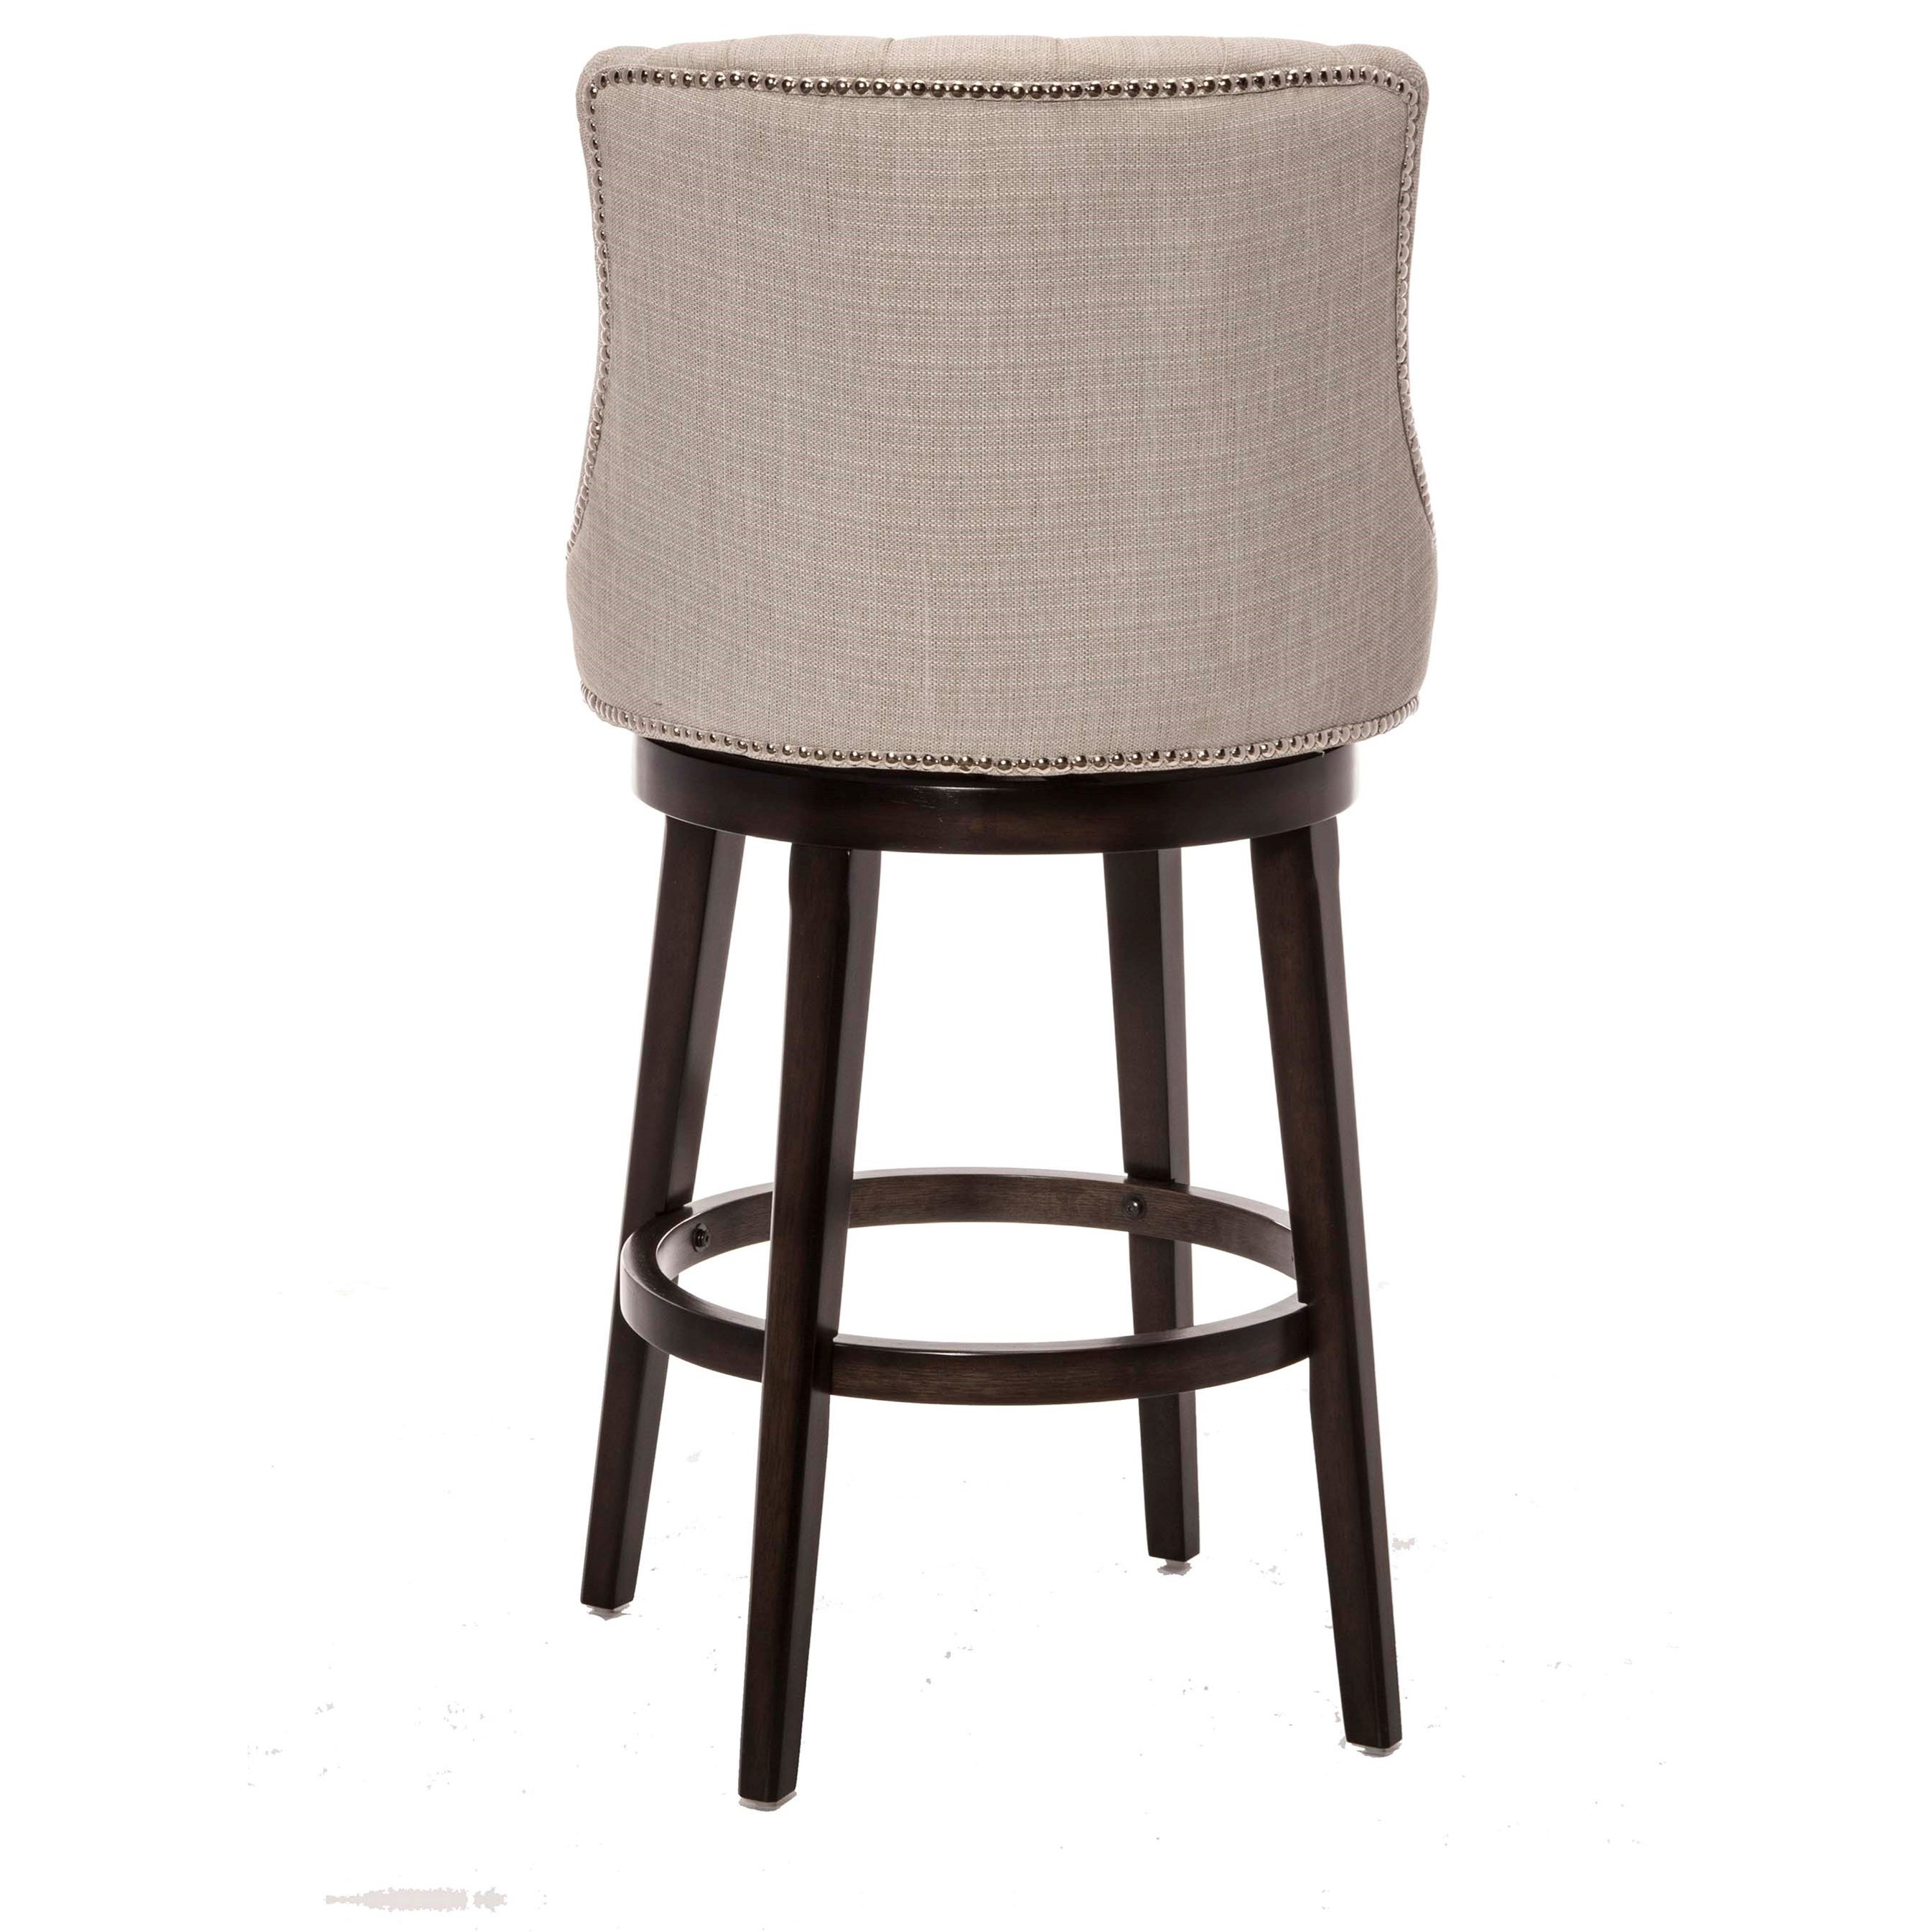 Hillsdale Wood Stools Classic Armchair Swivel Counter